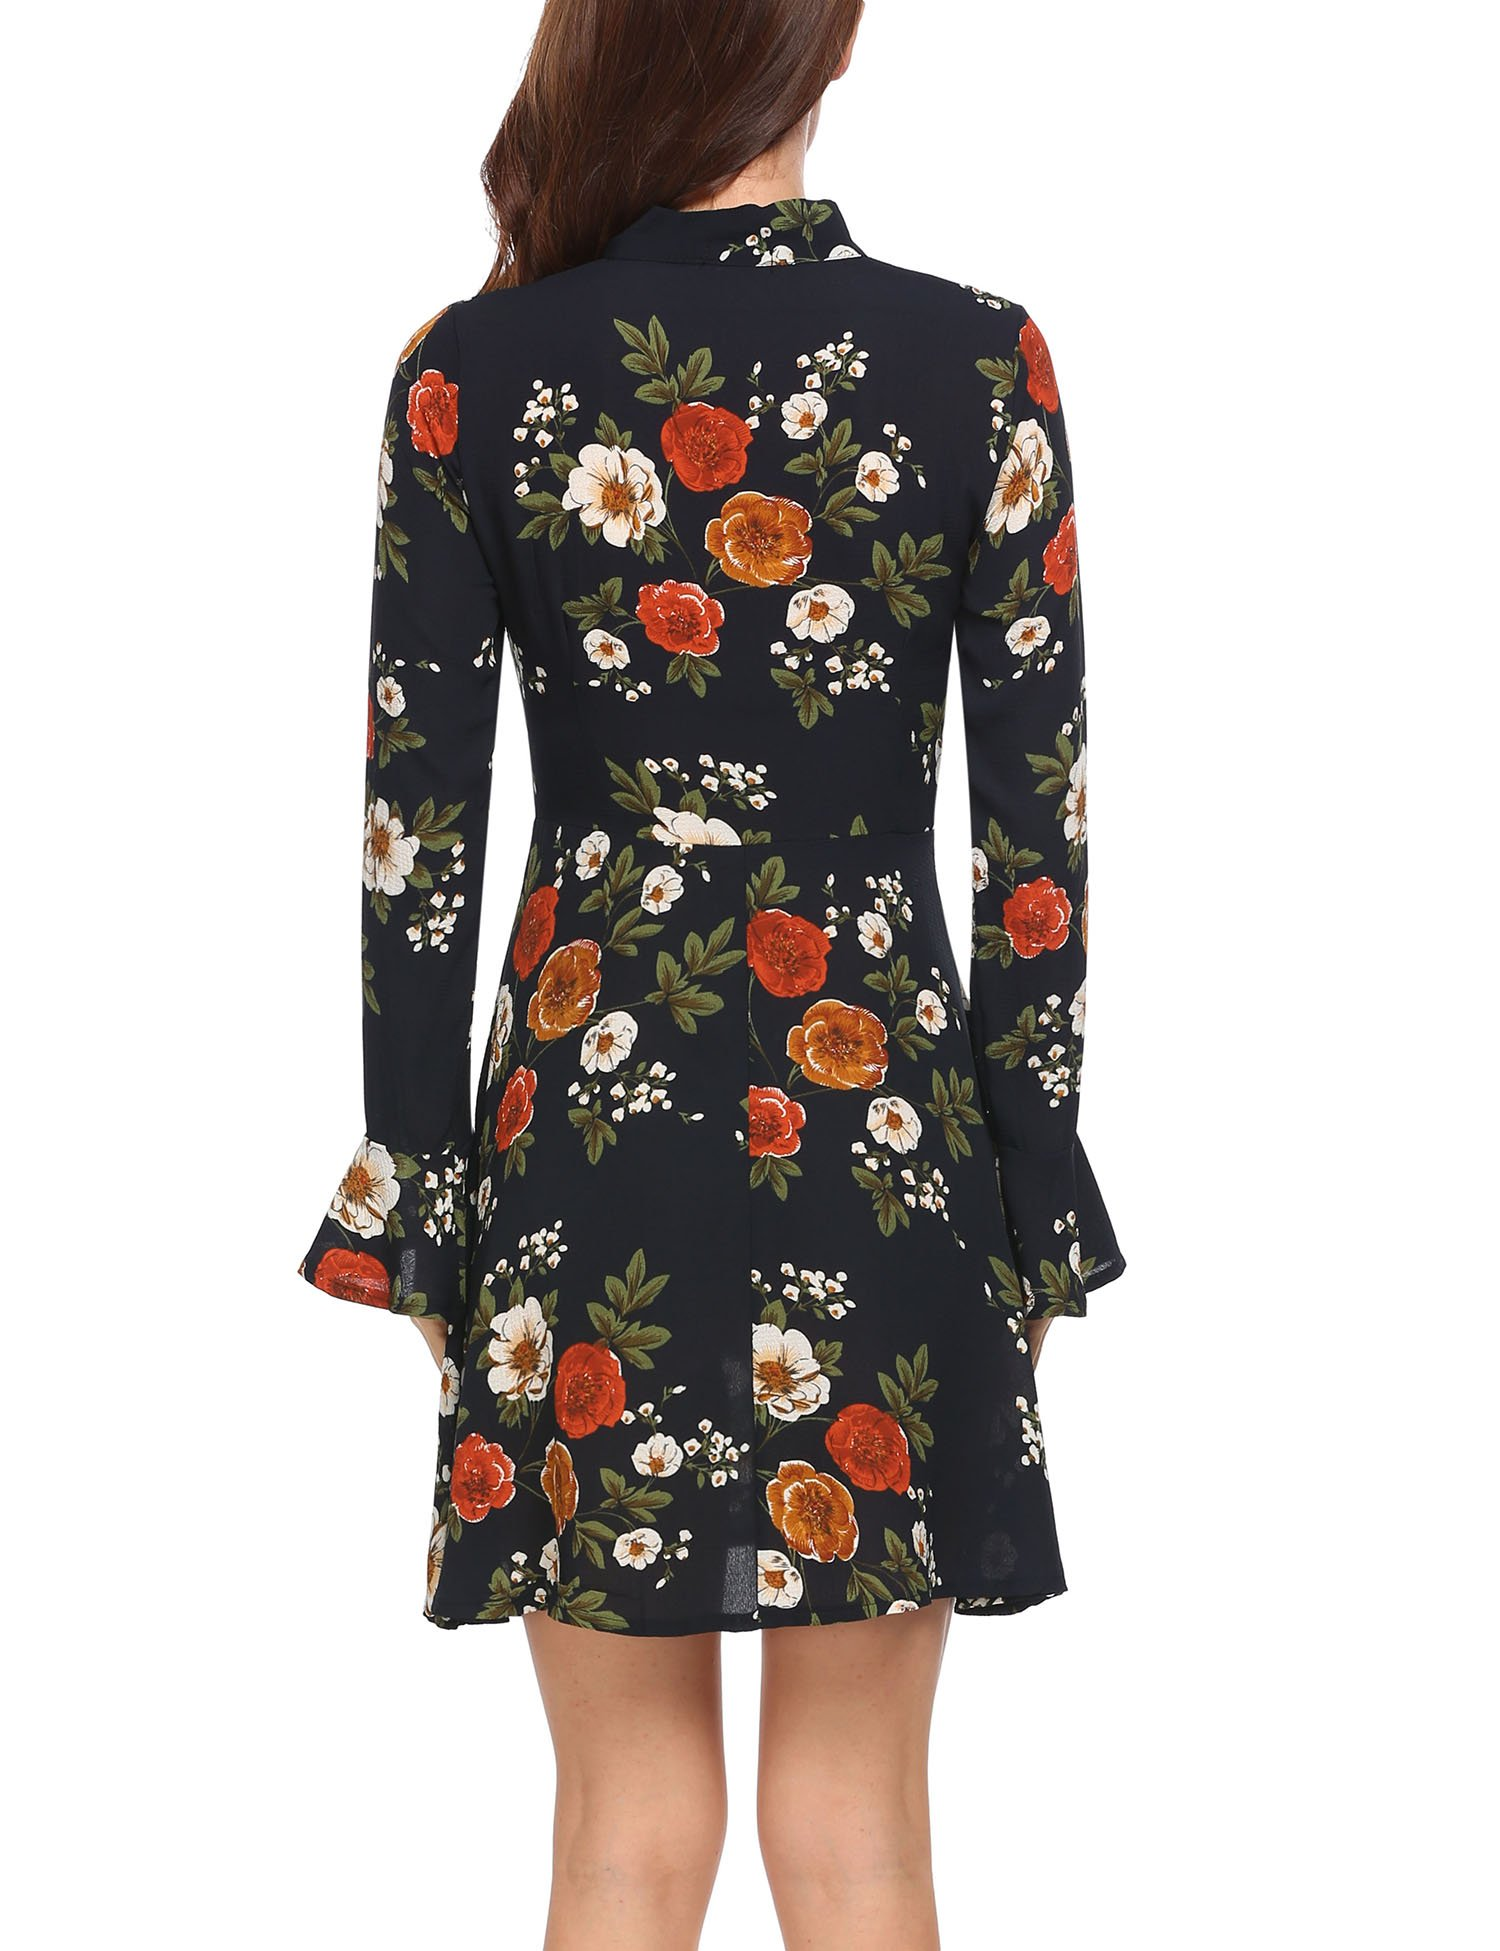 ACEVOG Women's Casual Floral Print Bell Sleeve Fit and Flare Dress,XX-Large,Floral 1 by ACEVOG (Image #4)